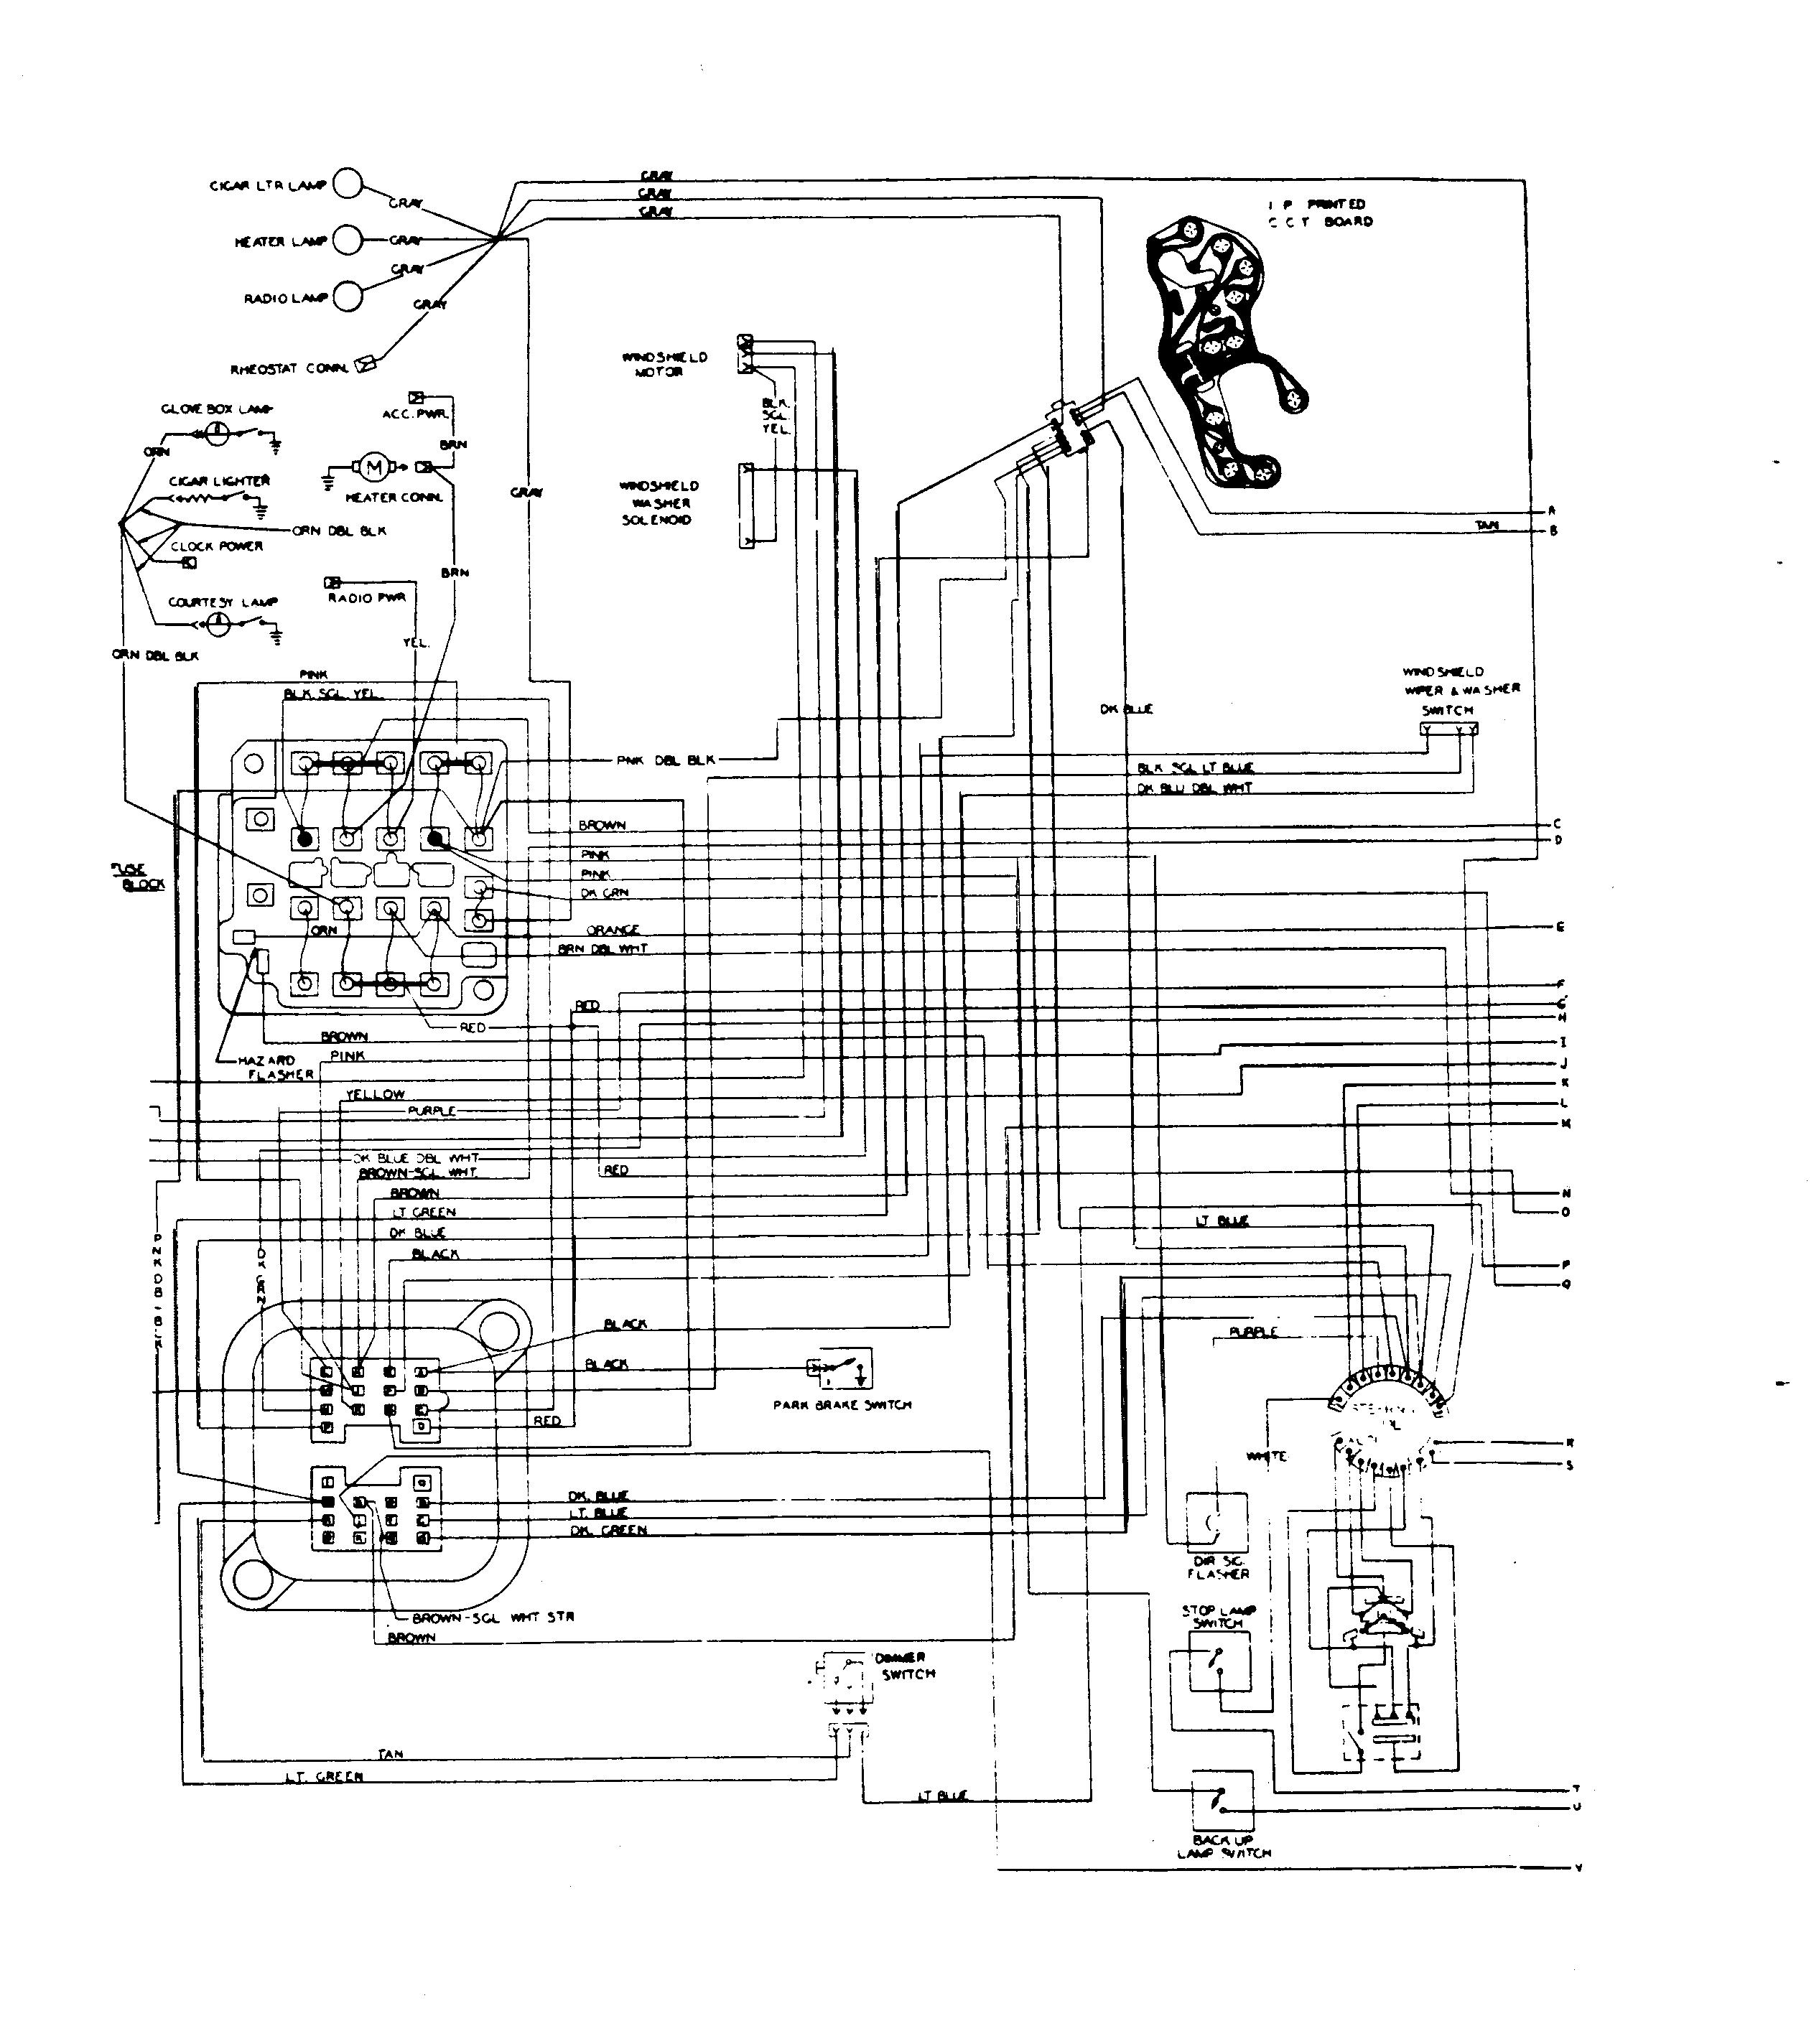 wiring diagram for 1966 pontiac tempest